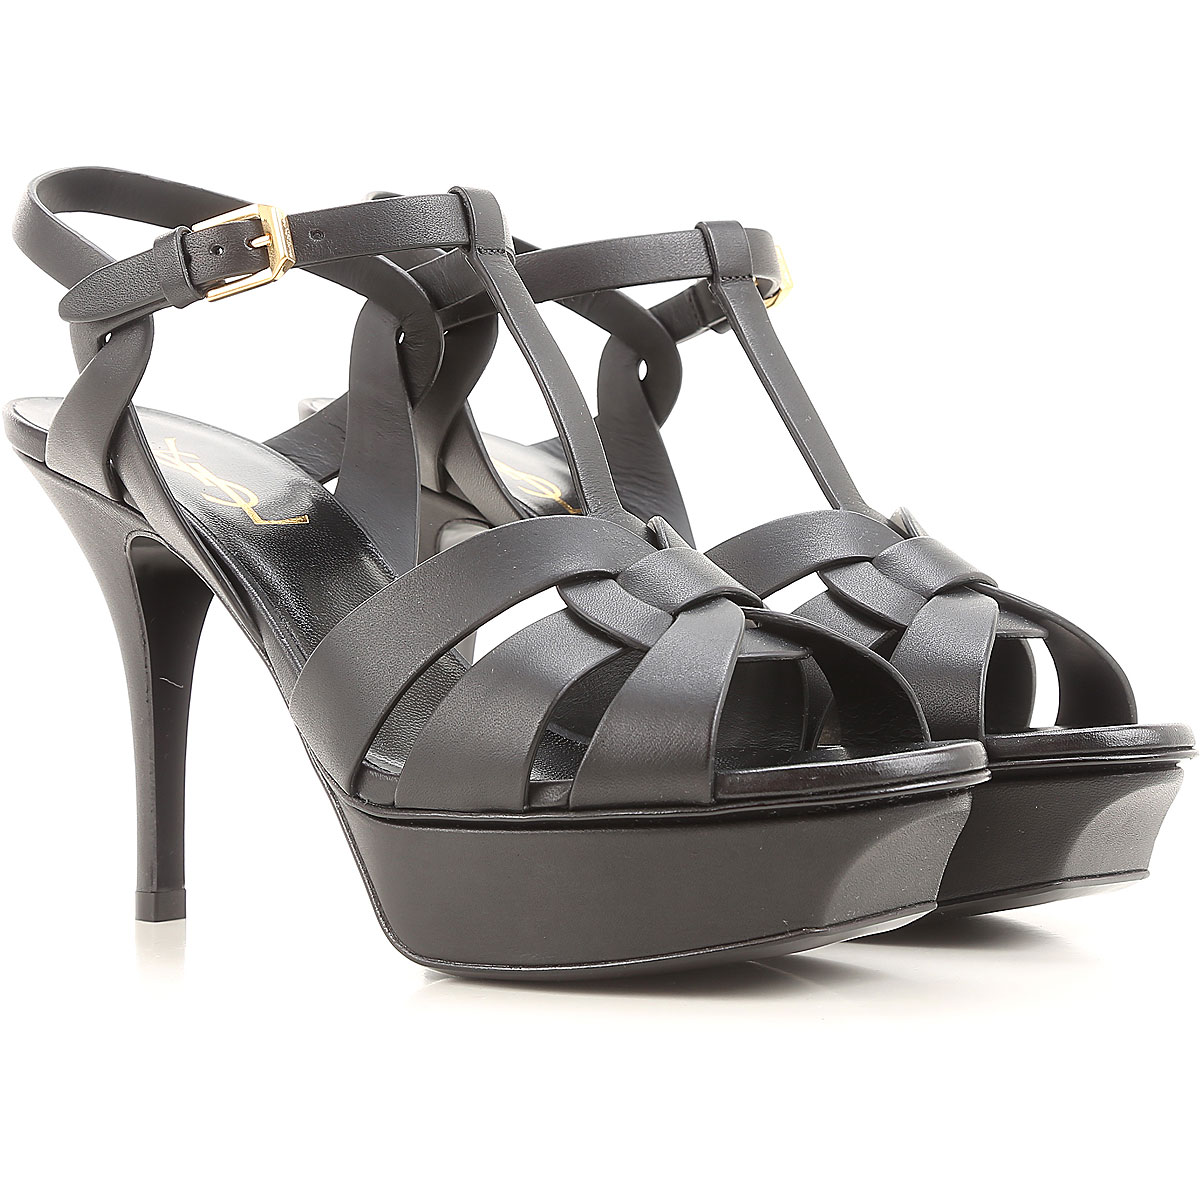 23e5179897f Womens Shoes Yves Saint Laurent, Style code: 315490-bda00-1000